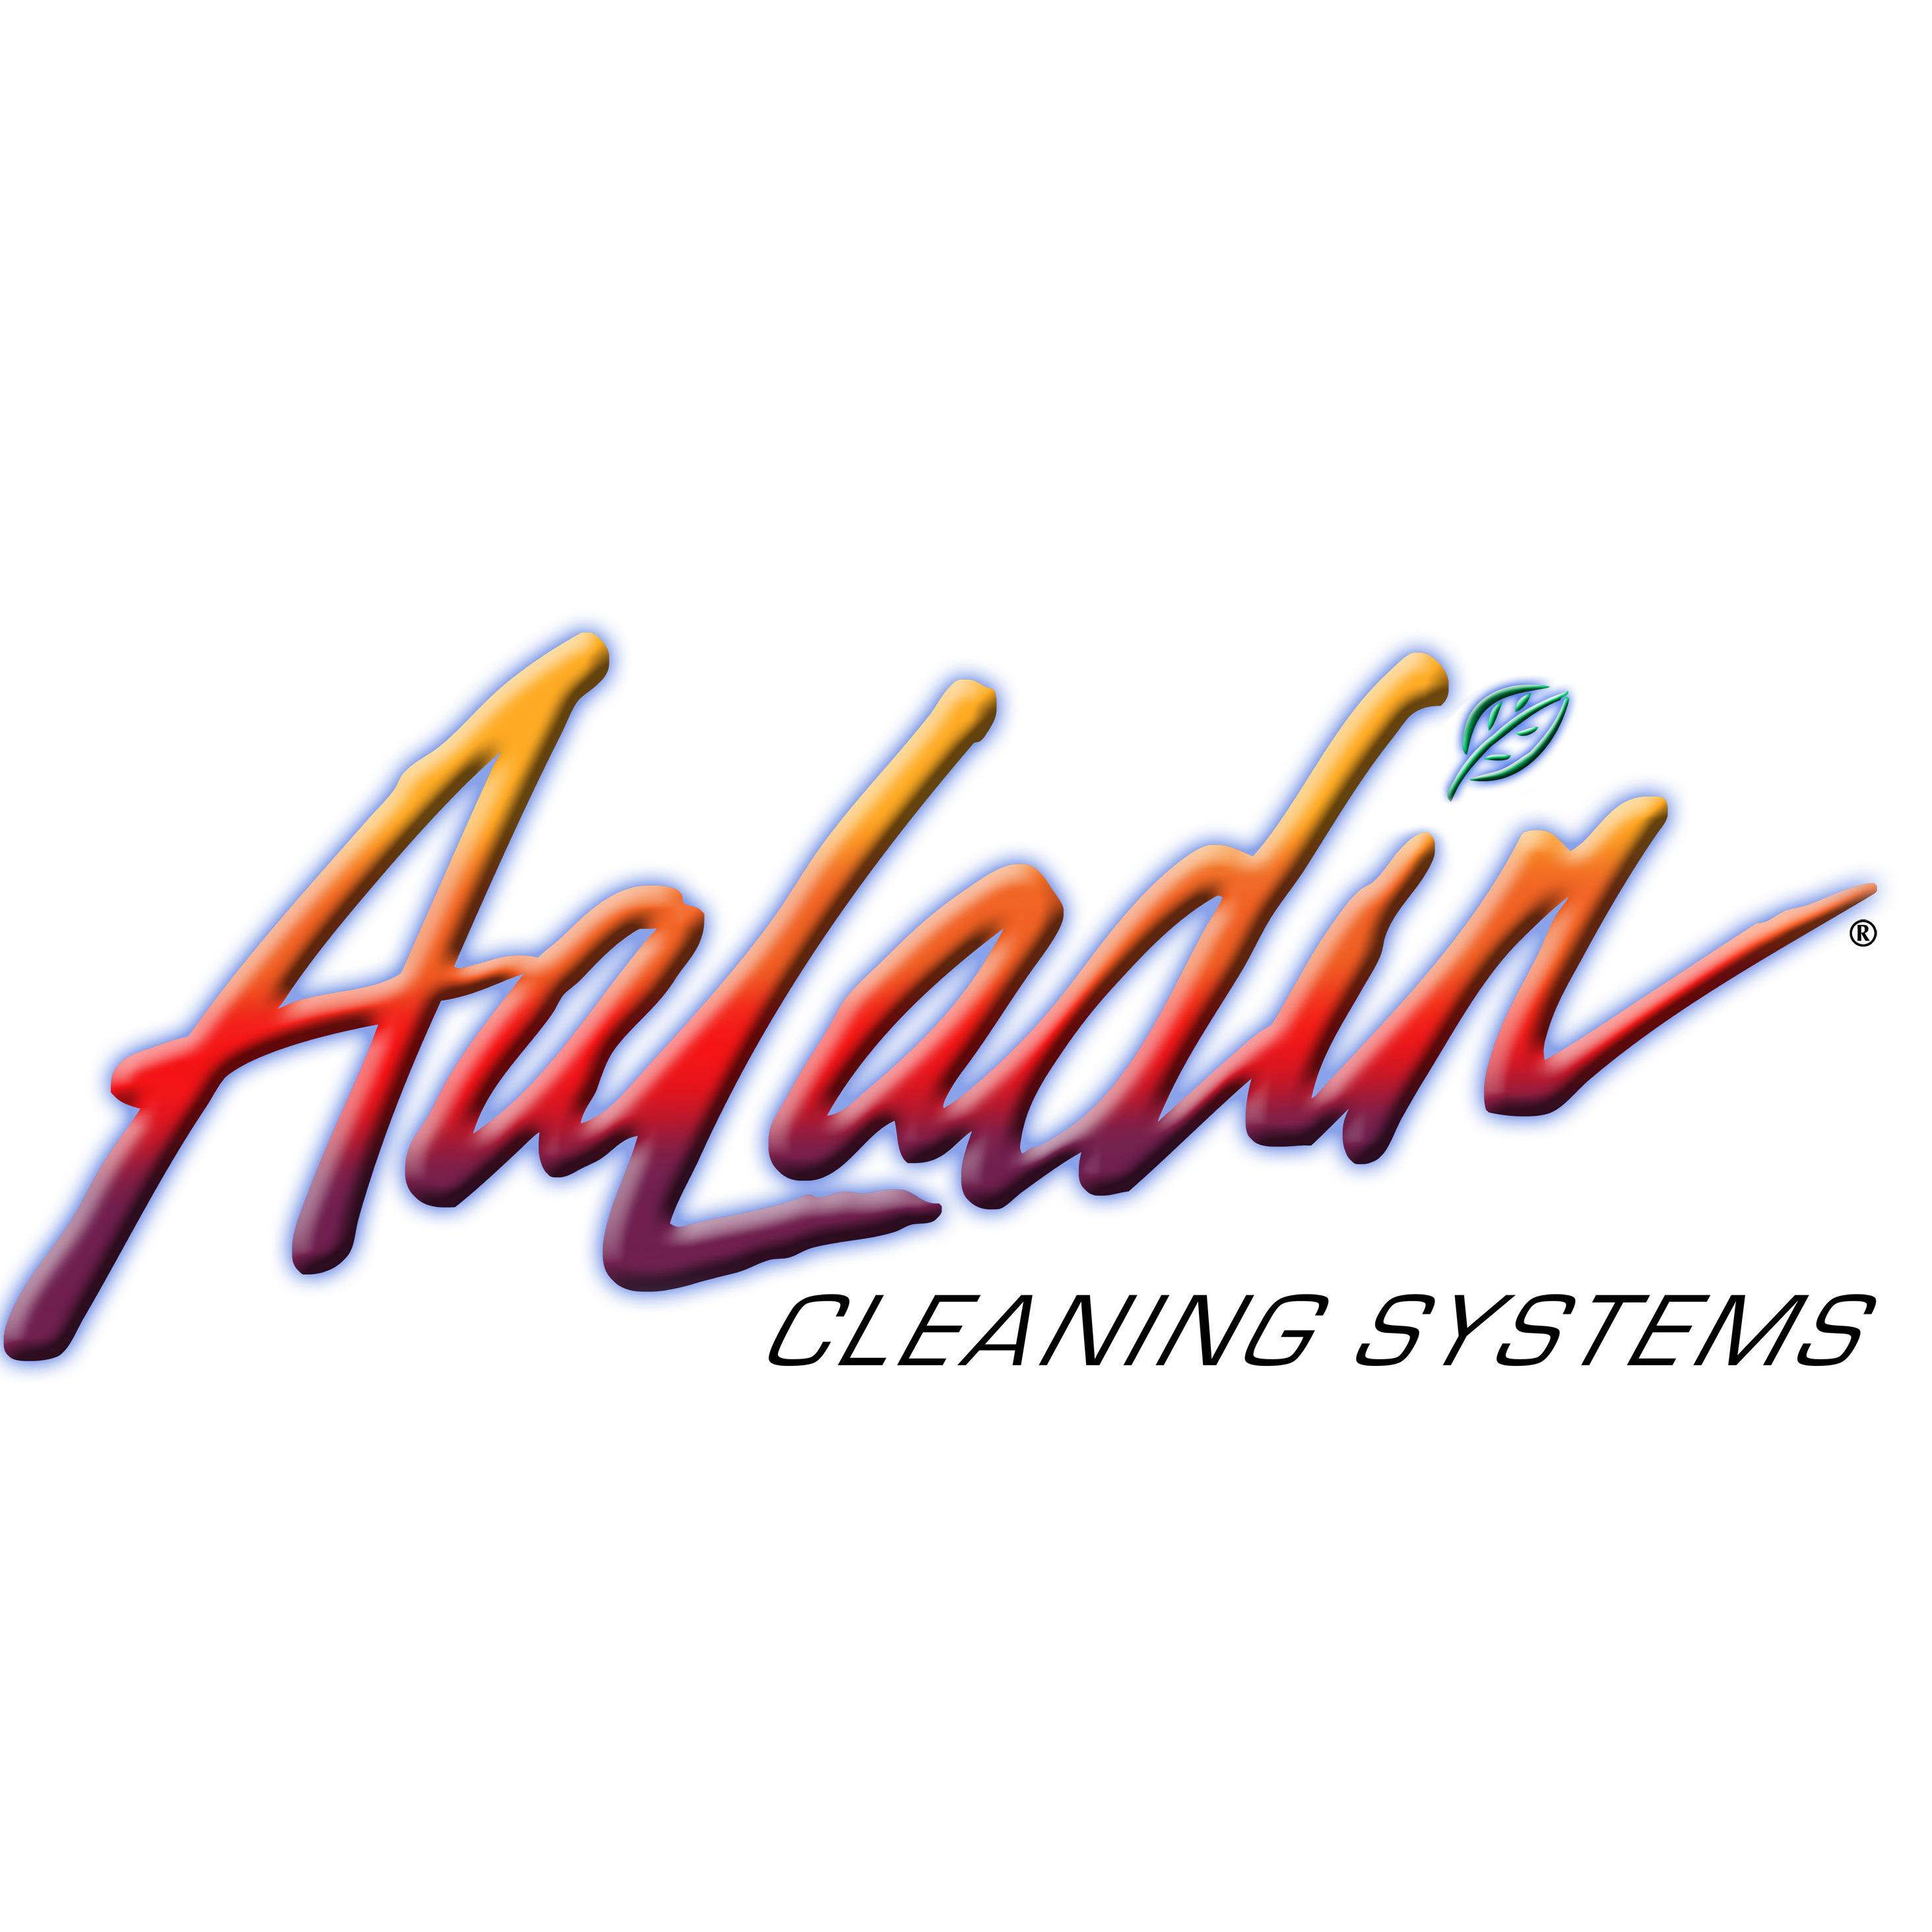 Total Winding Supplies LLC - Aaladin Central Hot Water Pressure Washers aaladincentral.com